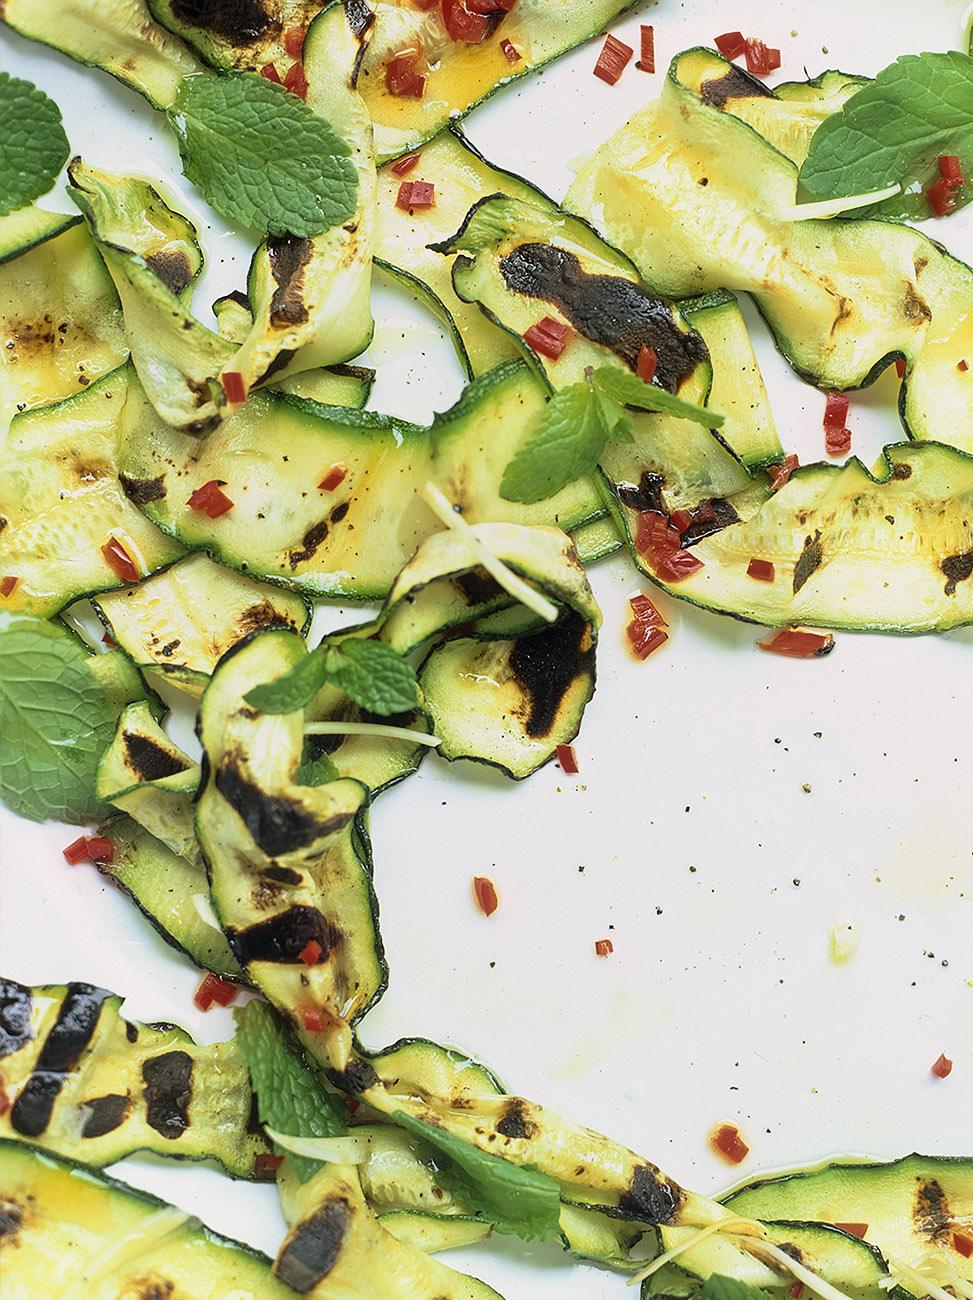 Courgette salad with mint garlic red chilli lemon and extra virgin olive oil